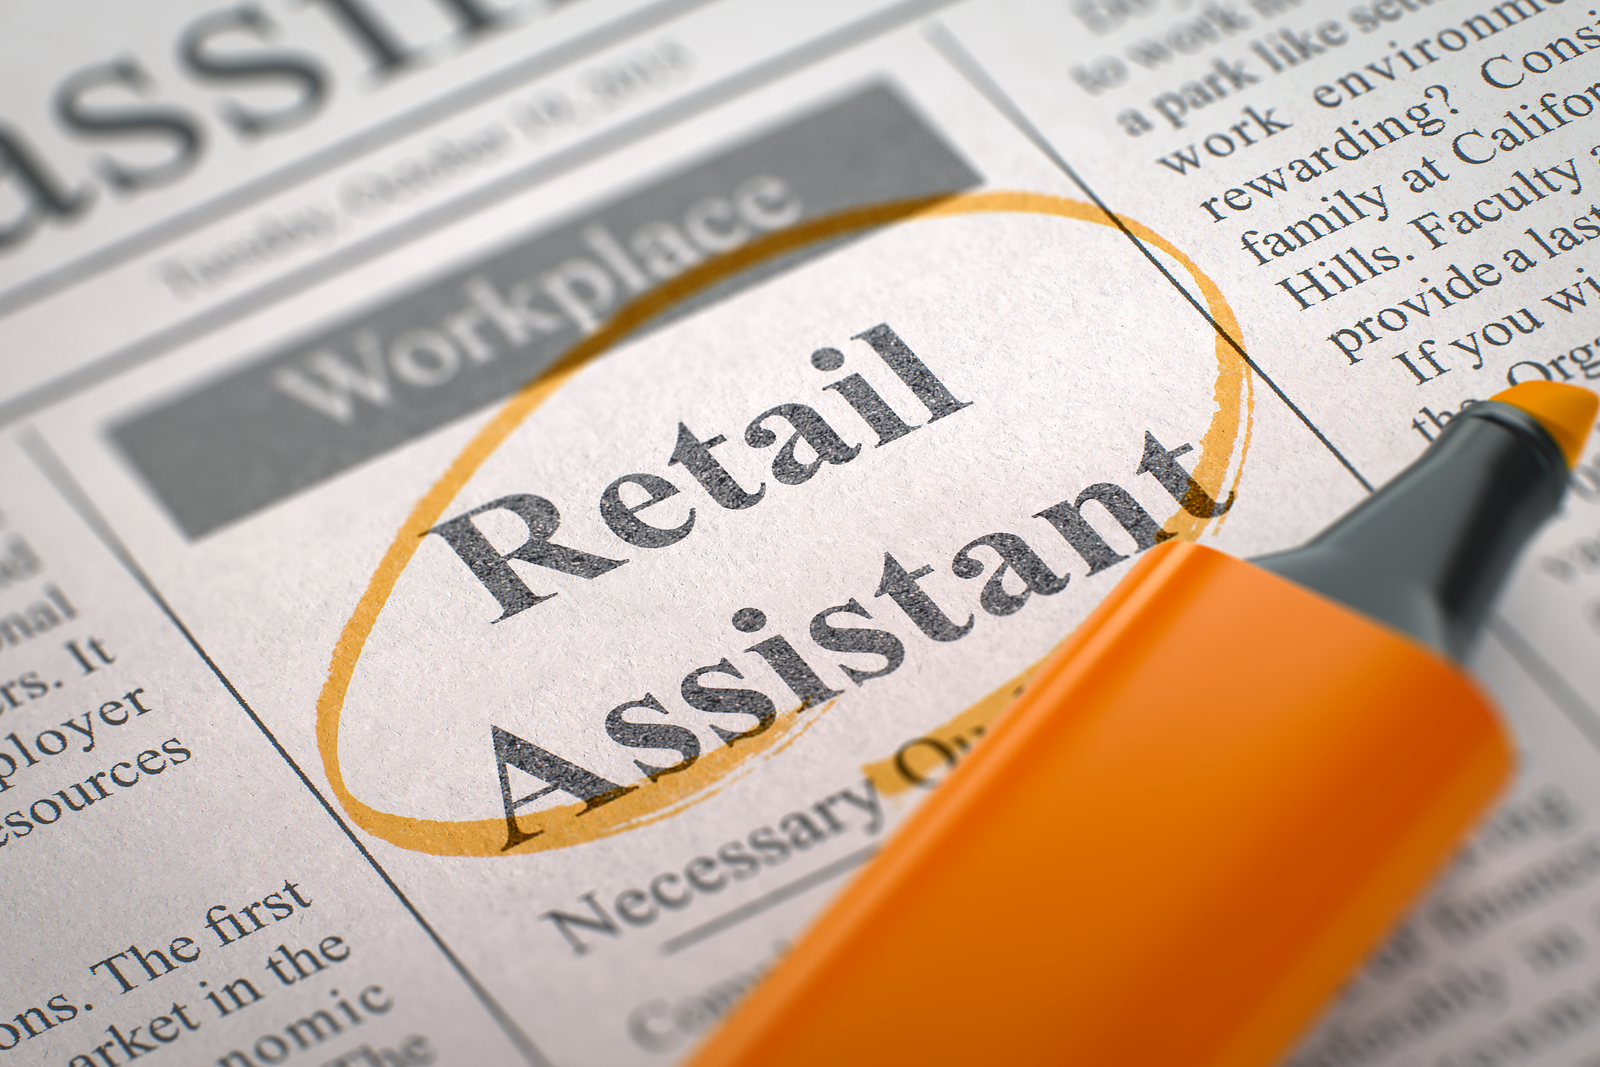 retail recruiting tips and best practices